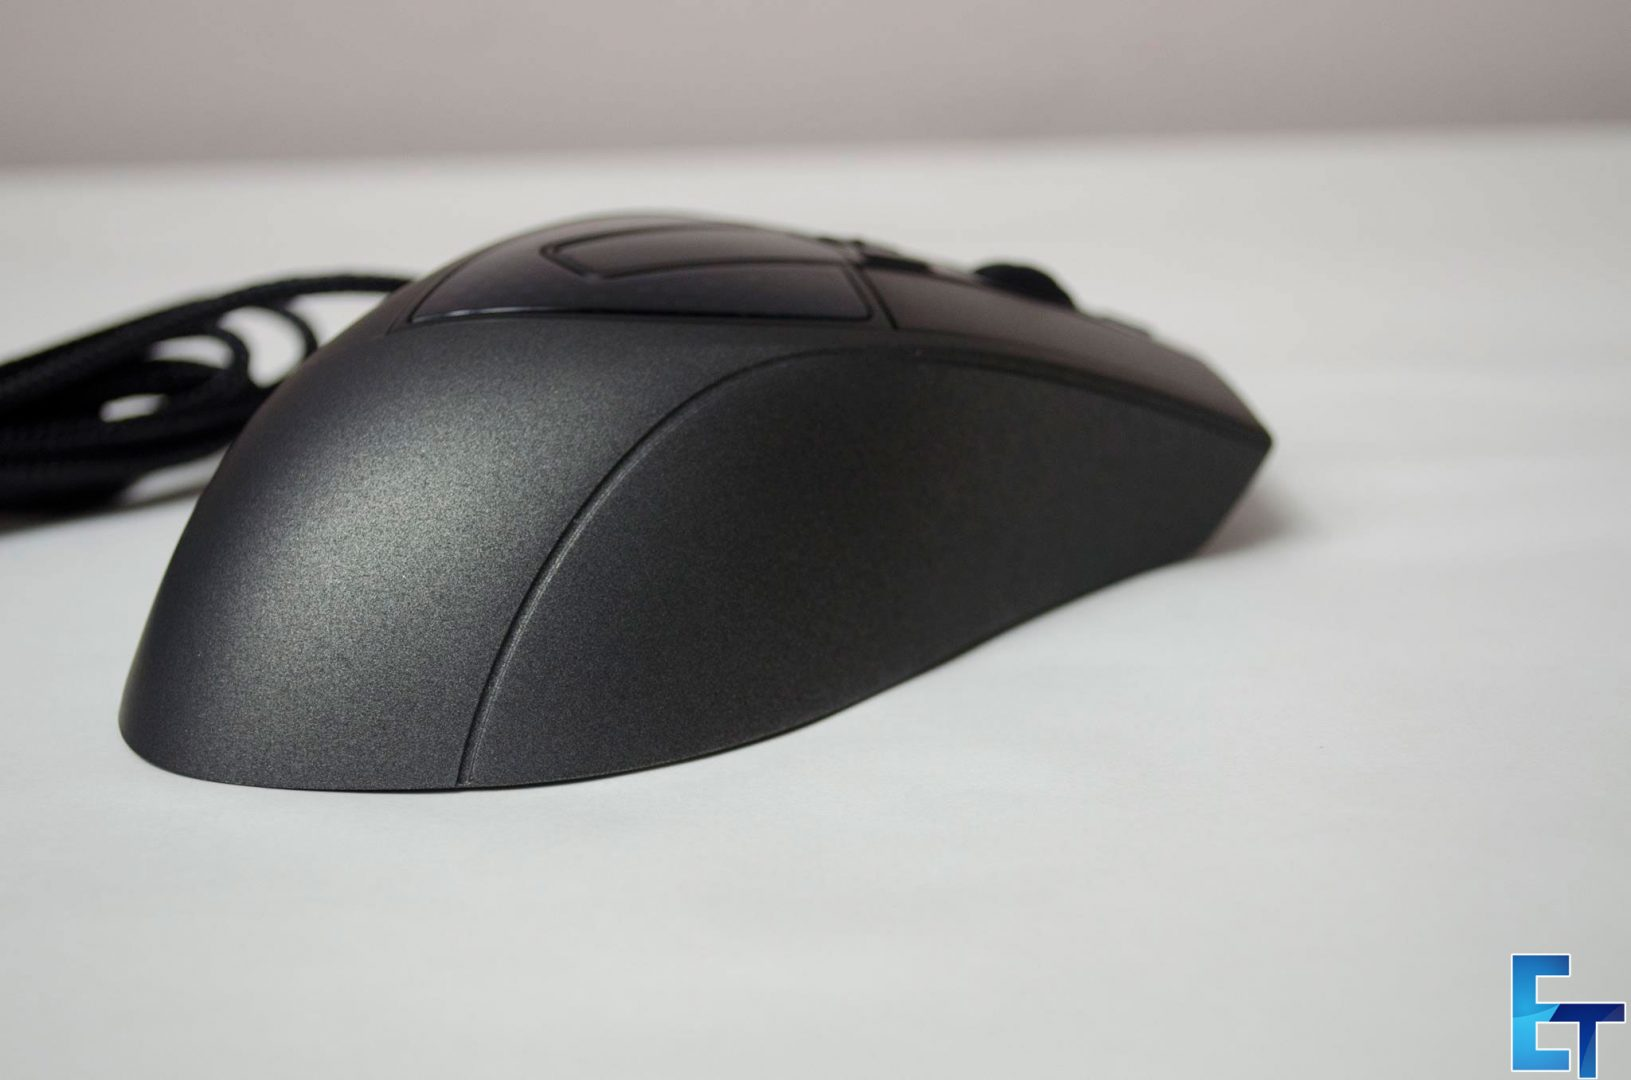 Cooler-Master-Sentinel-III-Ergonomic-Gaming-Mouse-Review_9